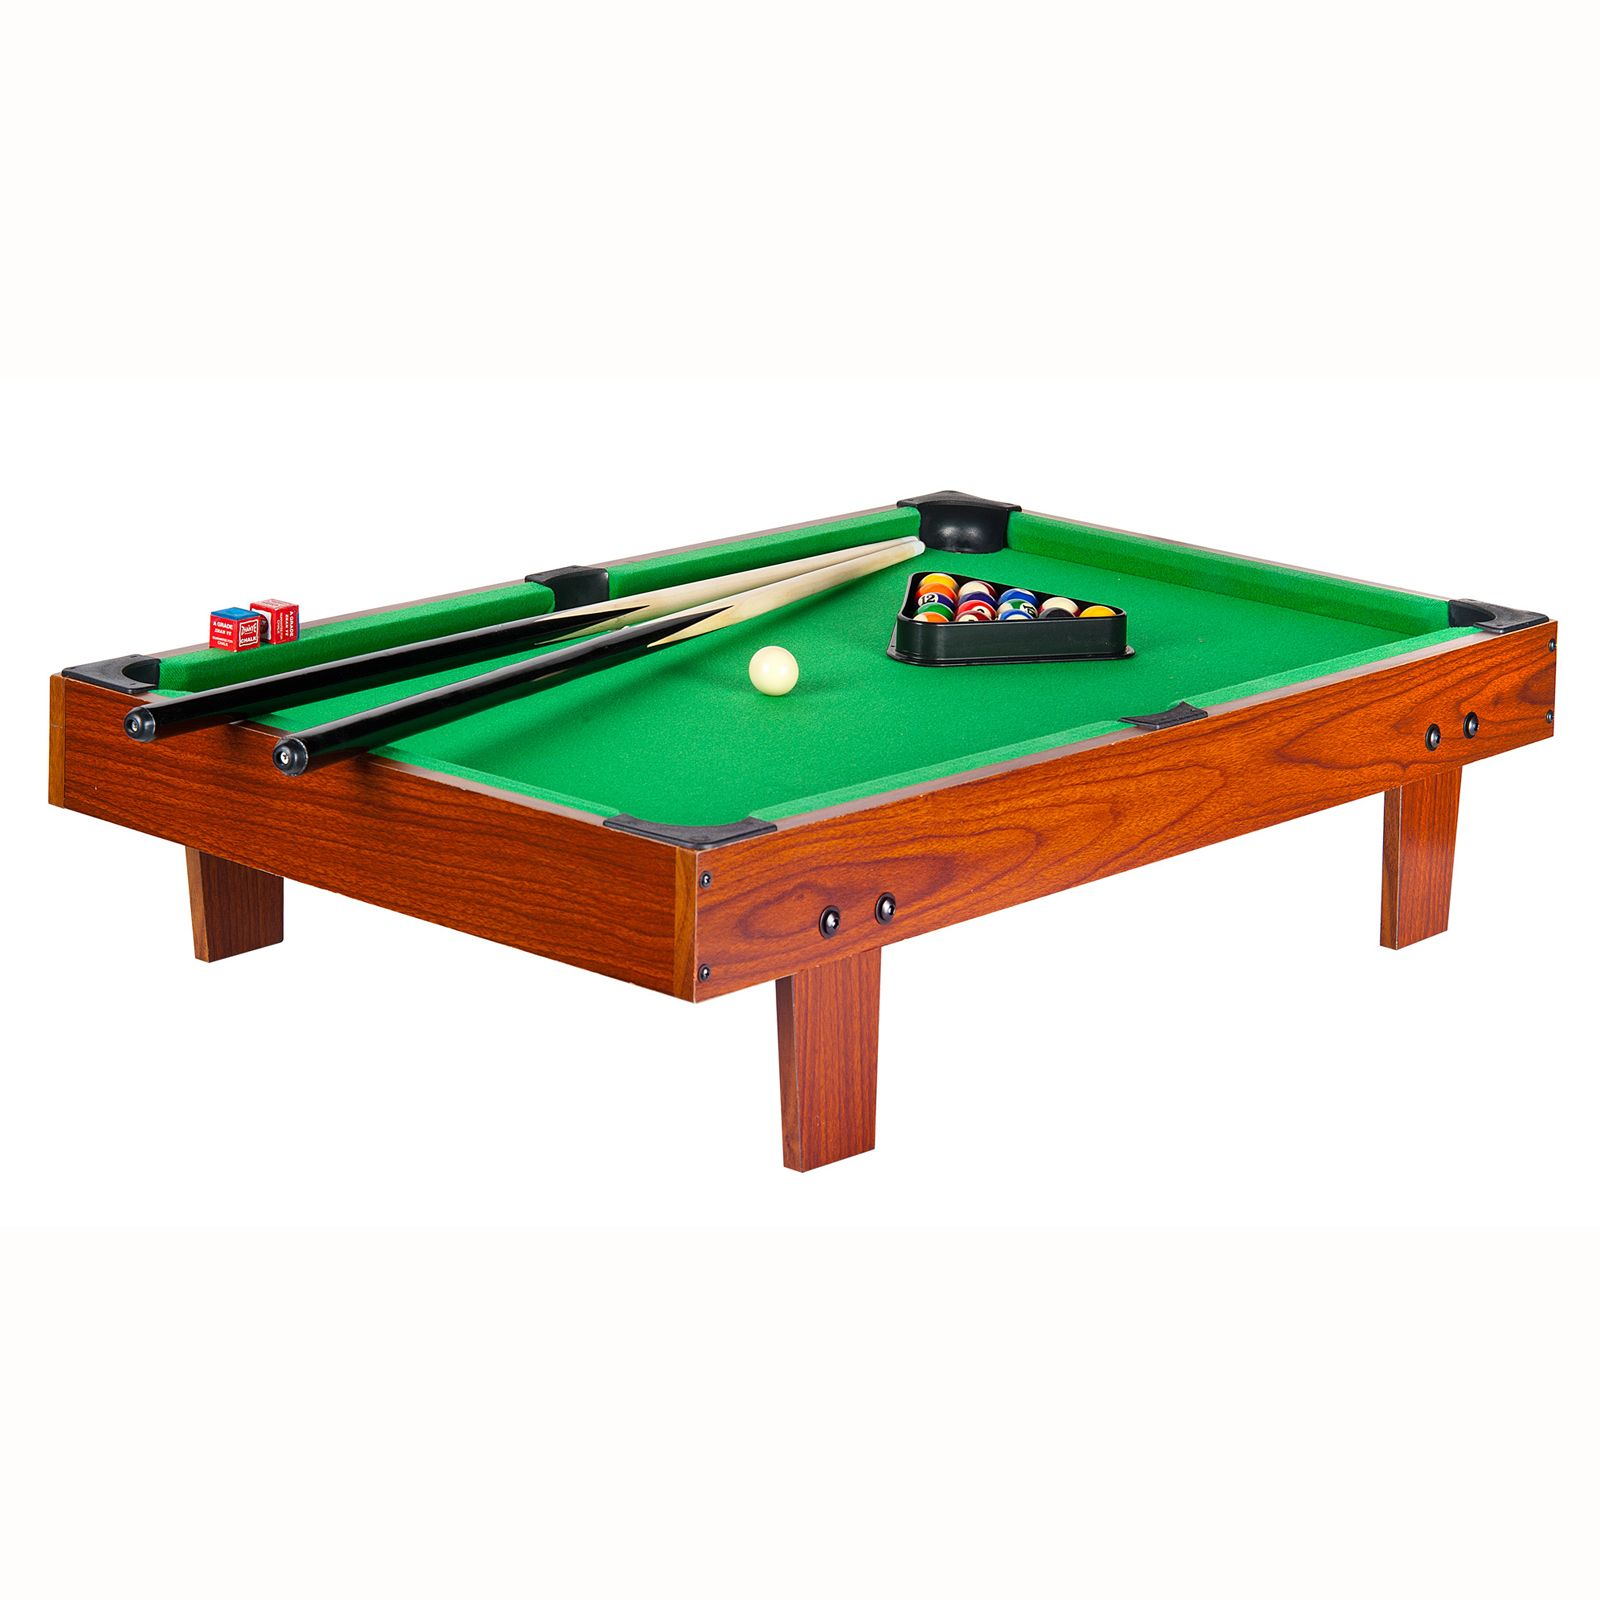 Portable pool snooker table new fun games ebay for Table 6 games